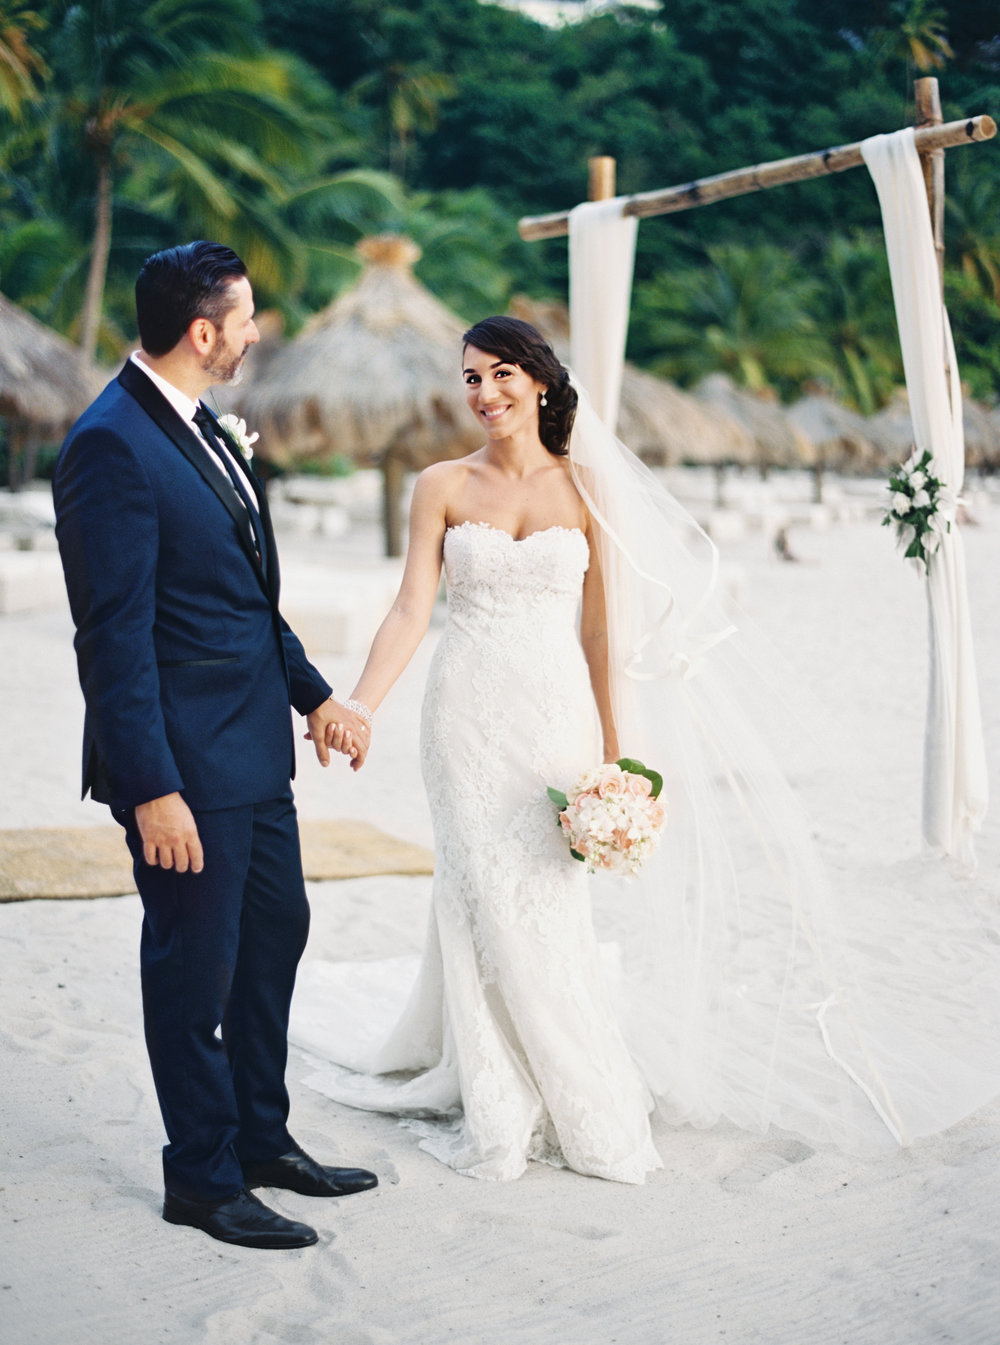 104Delmary's & Daniel : ELOPEMENT : ST. LUCIA : CARIBBEAN : PHOTO & VIDEO : DESTINATION : OUTLIVE CREATIVE : 2016 .jpg